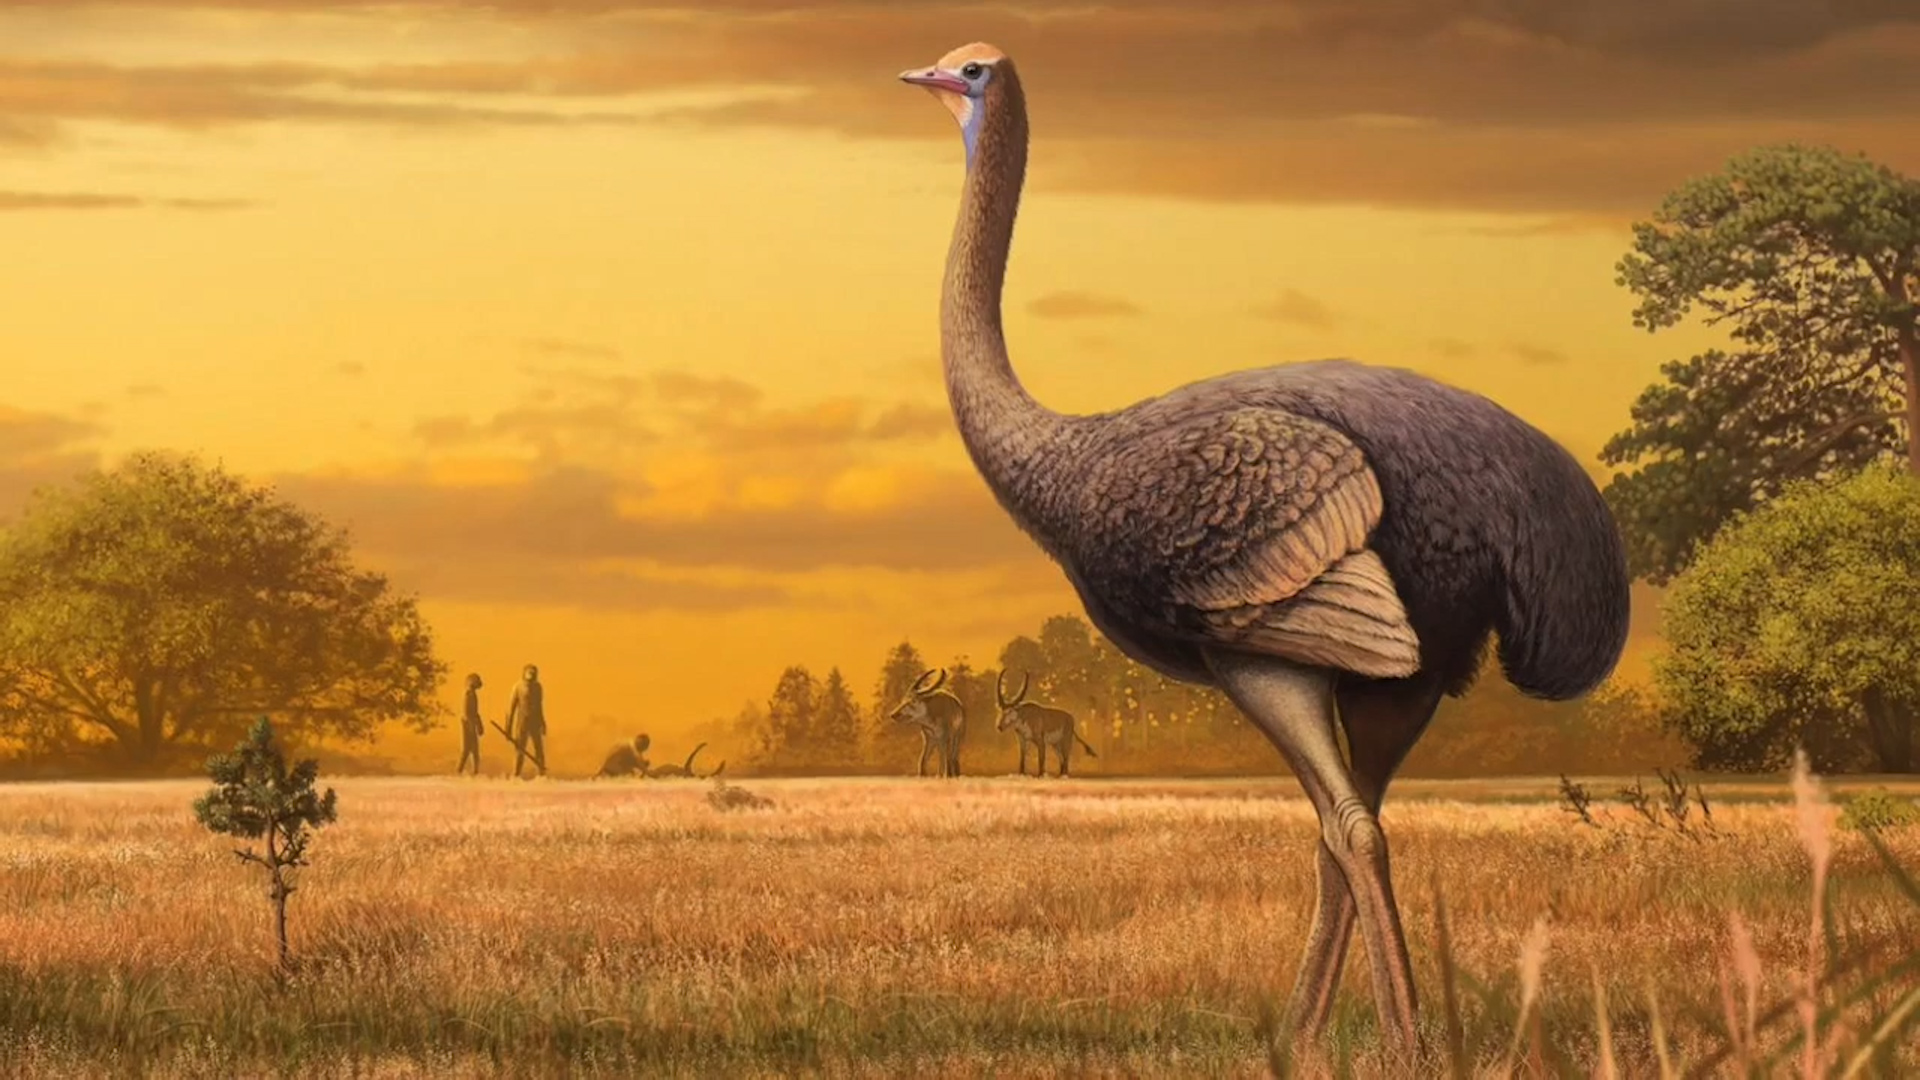 Europeans lived alongside giant bird